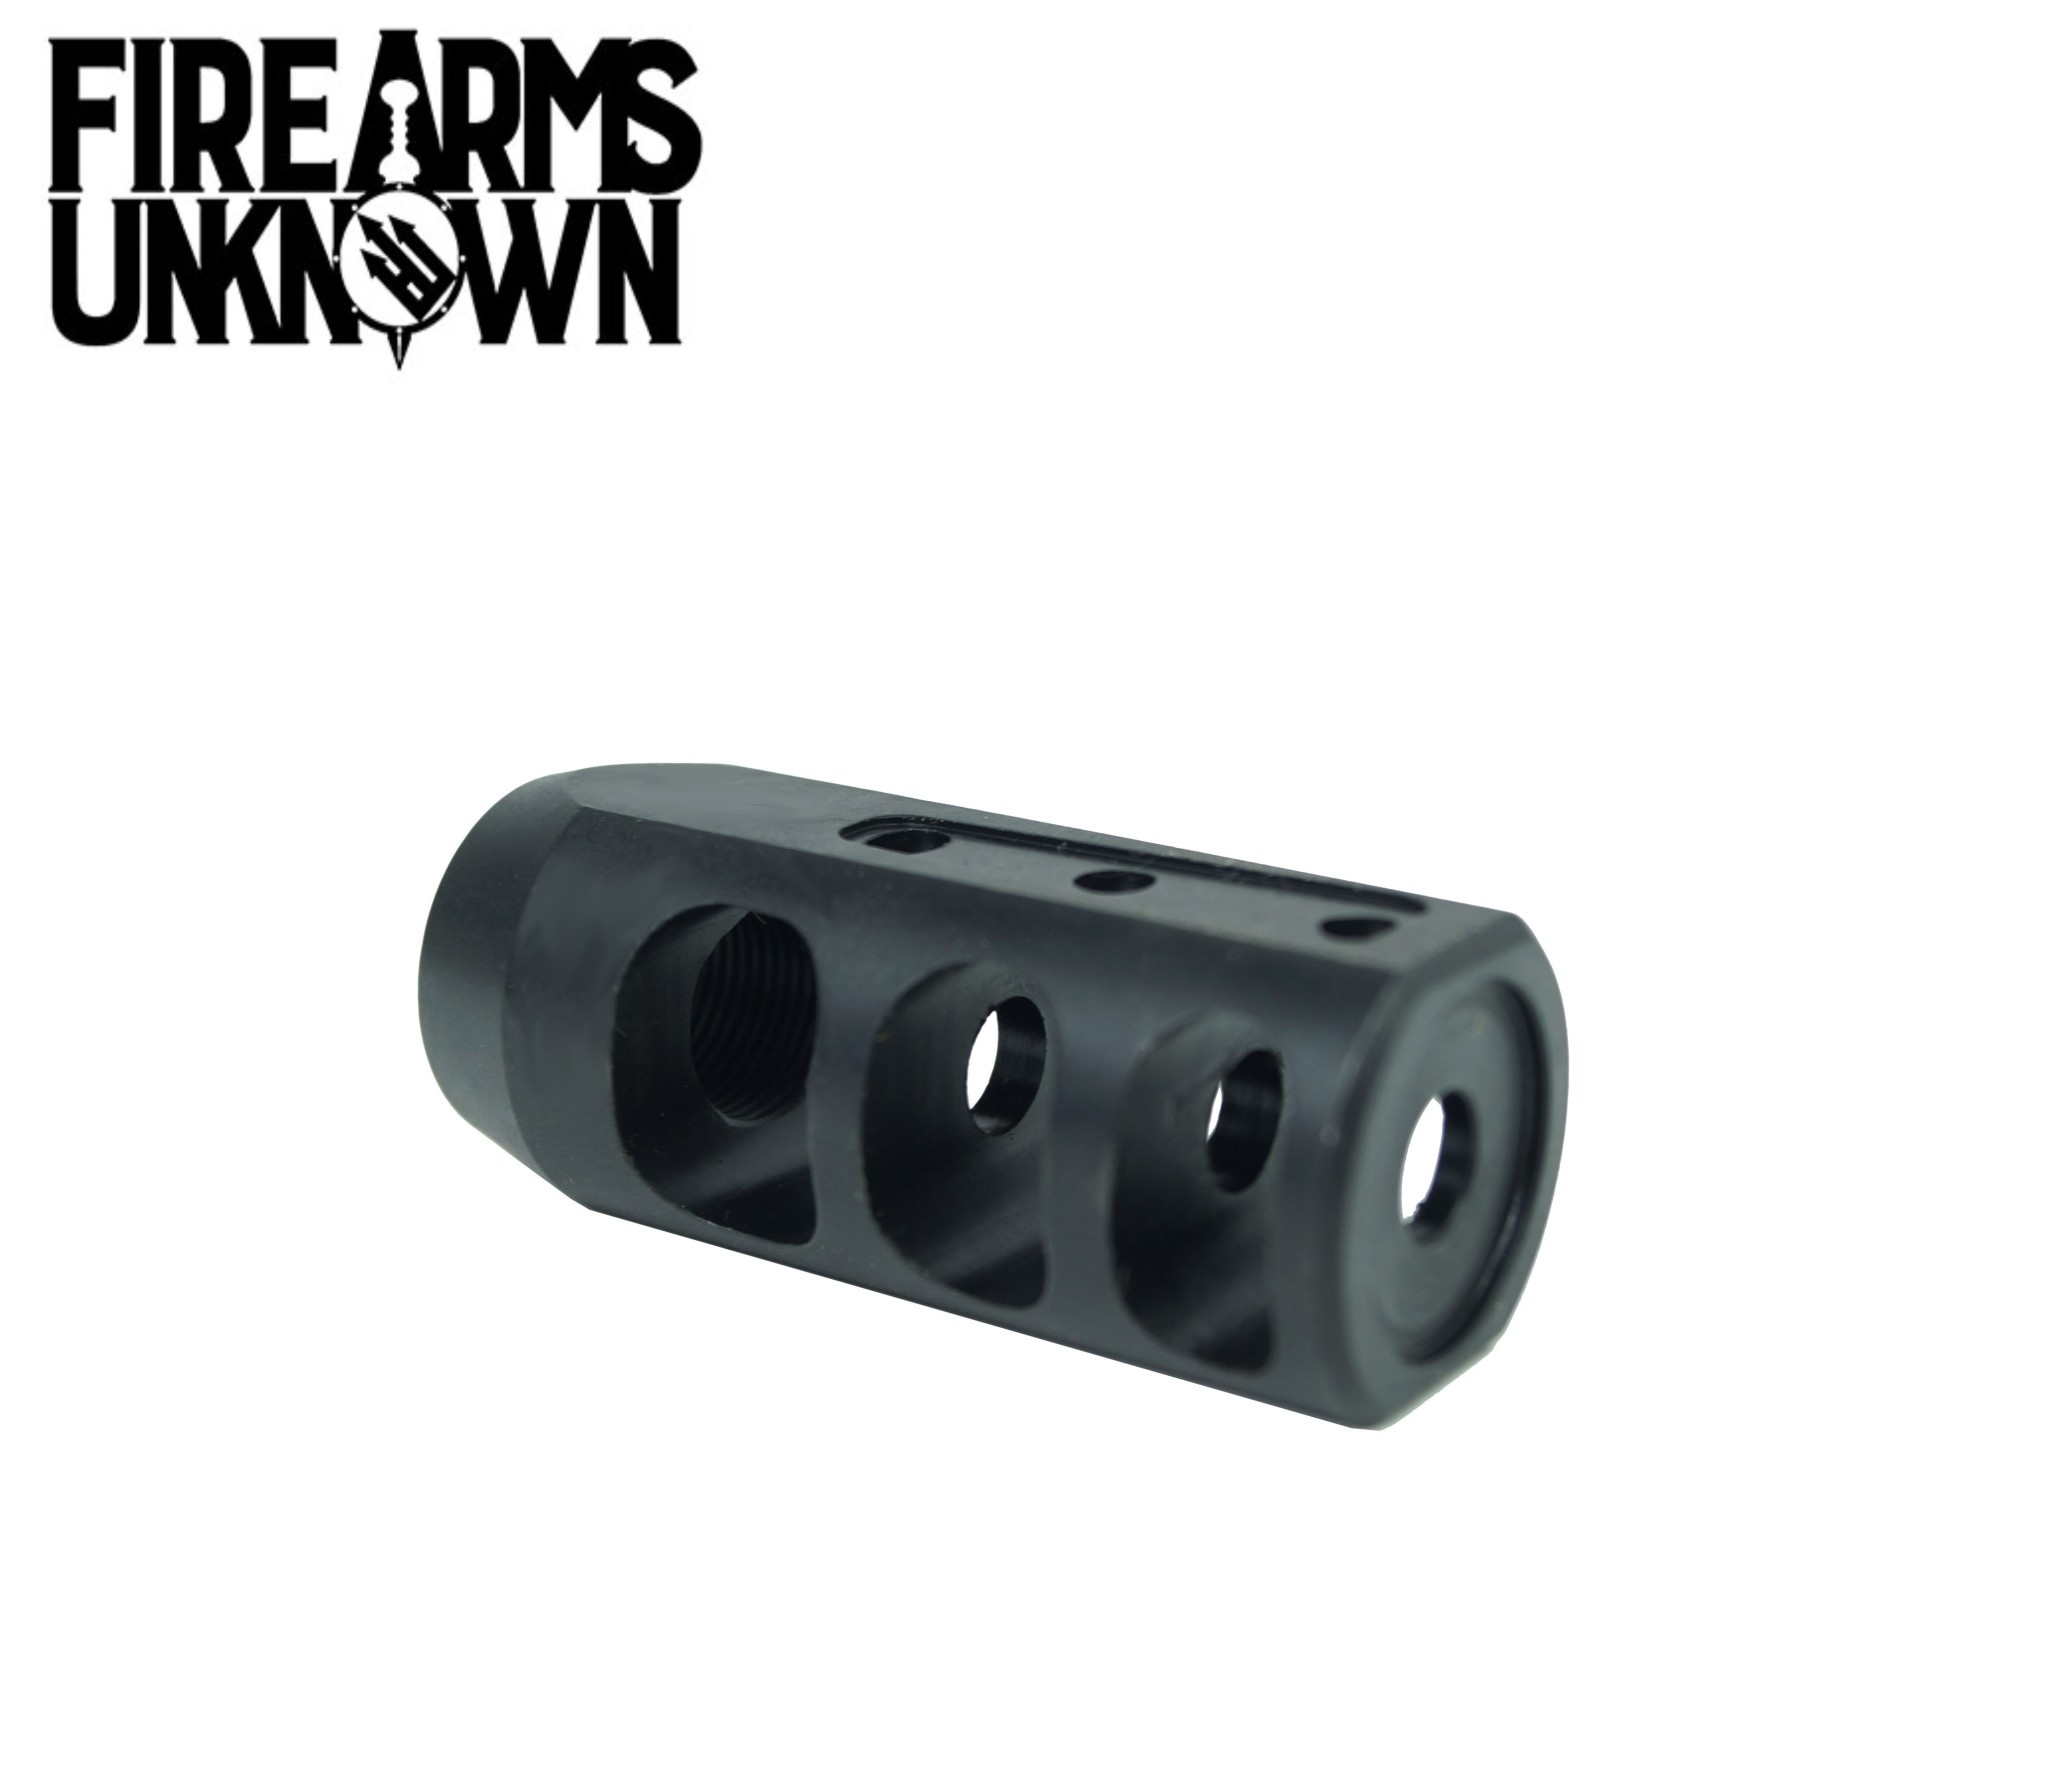 House AR15 BF18 Muzzle Brake Comp